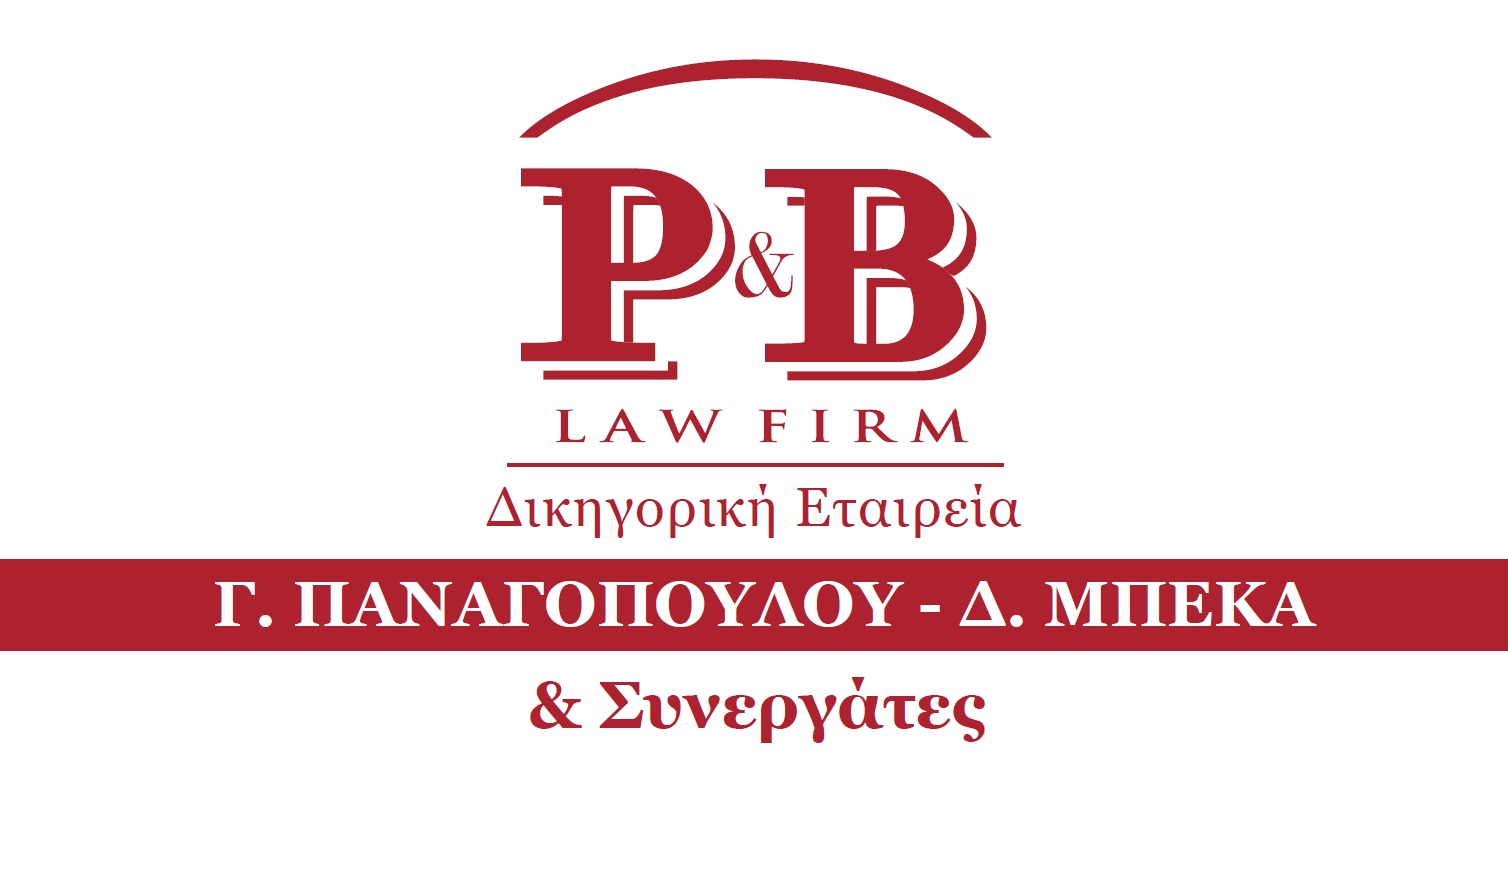 NEW MEMBER G. PANAGOPOULOU- D. BEKA and ASSOCIATES LAW FIRM (P&B LAW FIRM)